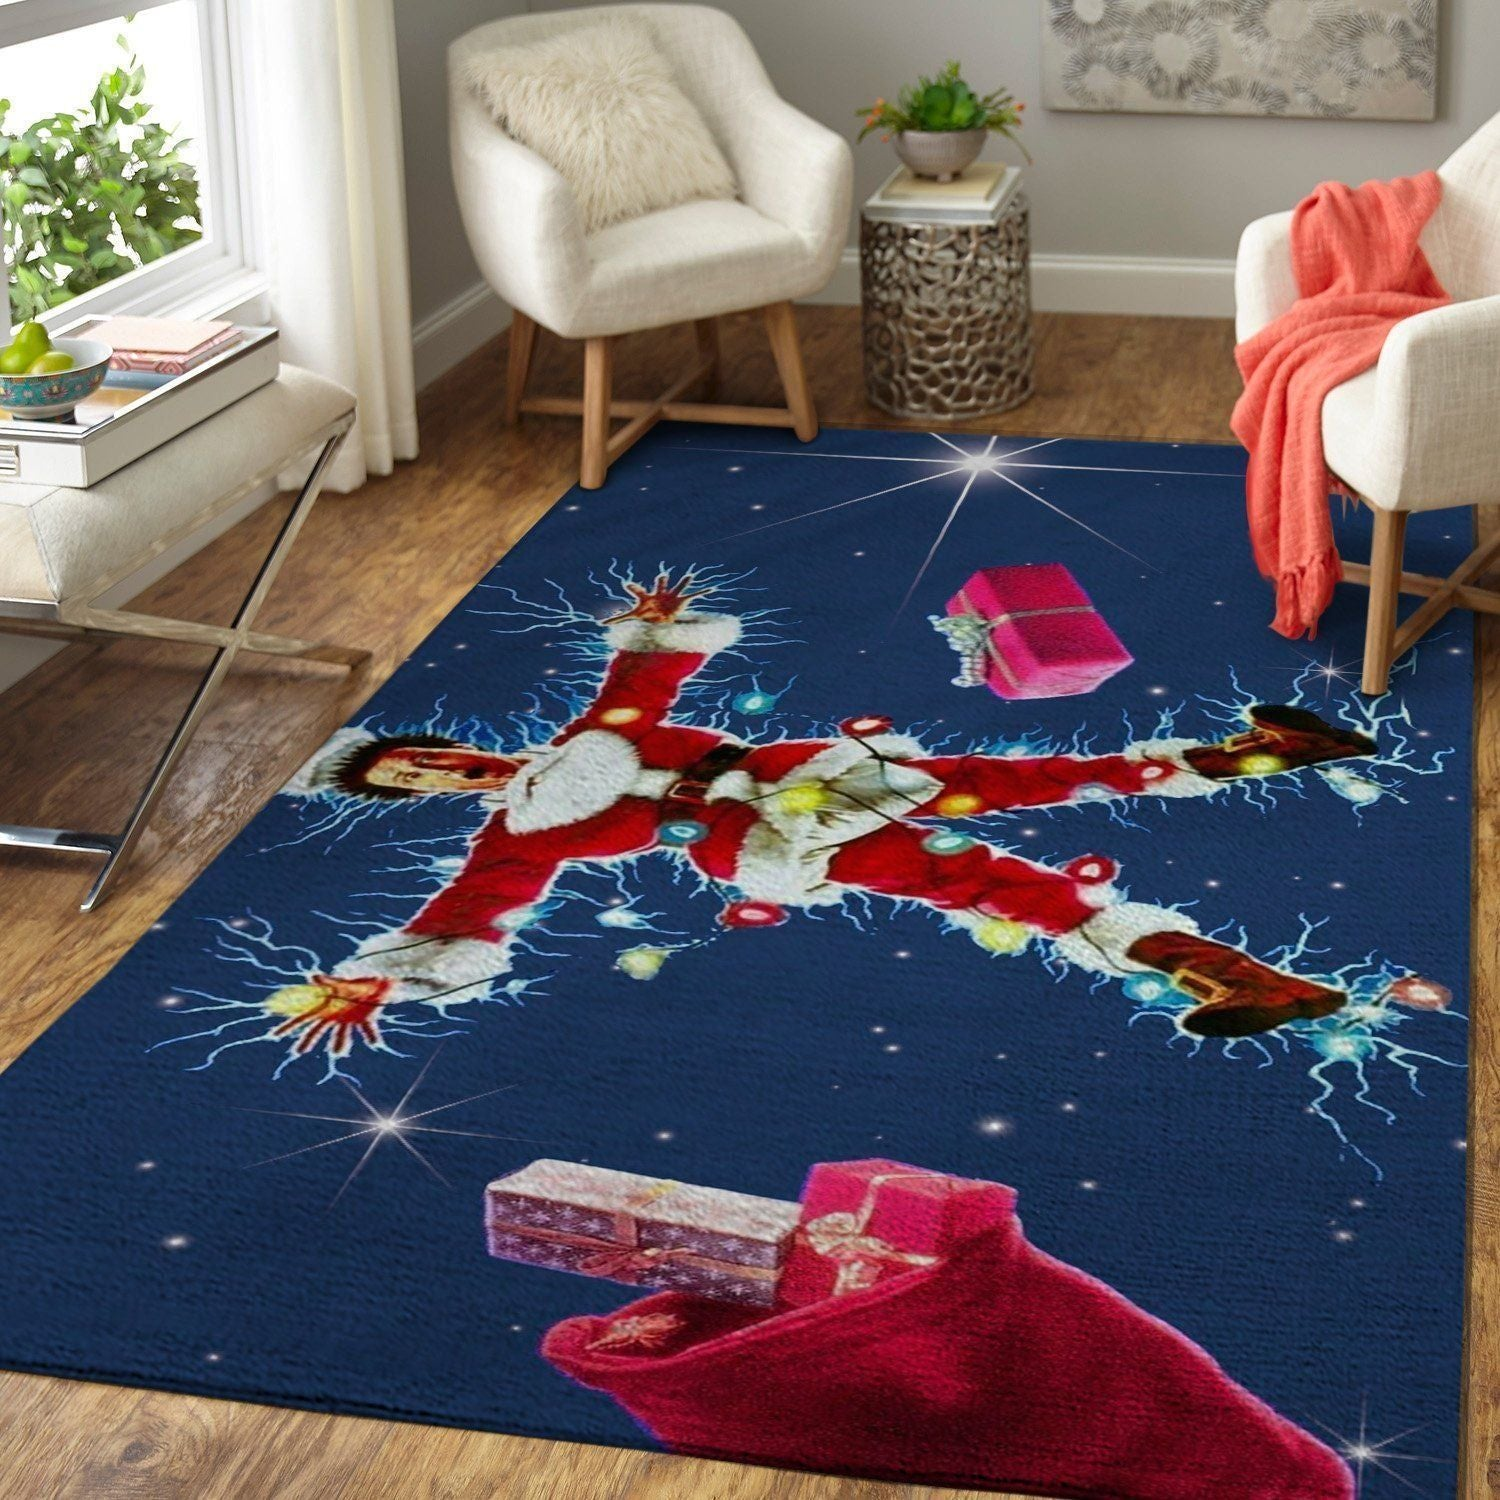 National Lampoon's Christmas Vacation Area Rugs / Movie Living Room Carpet, Custom Floor Decor 3